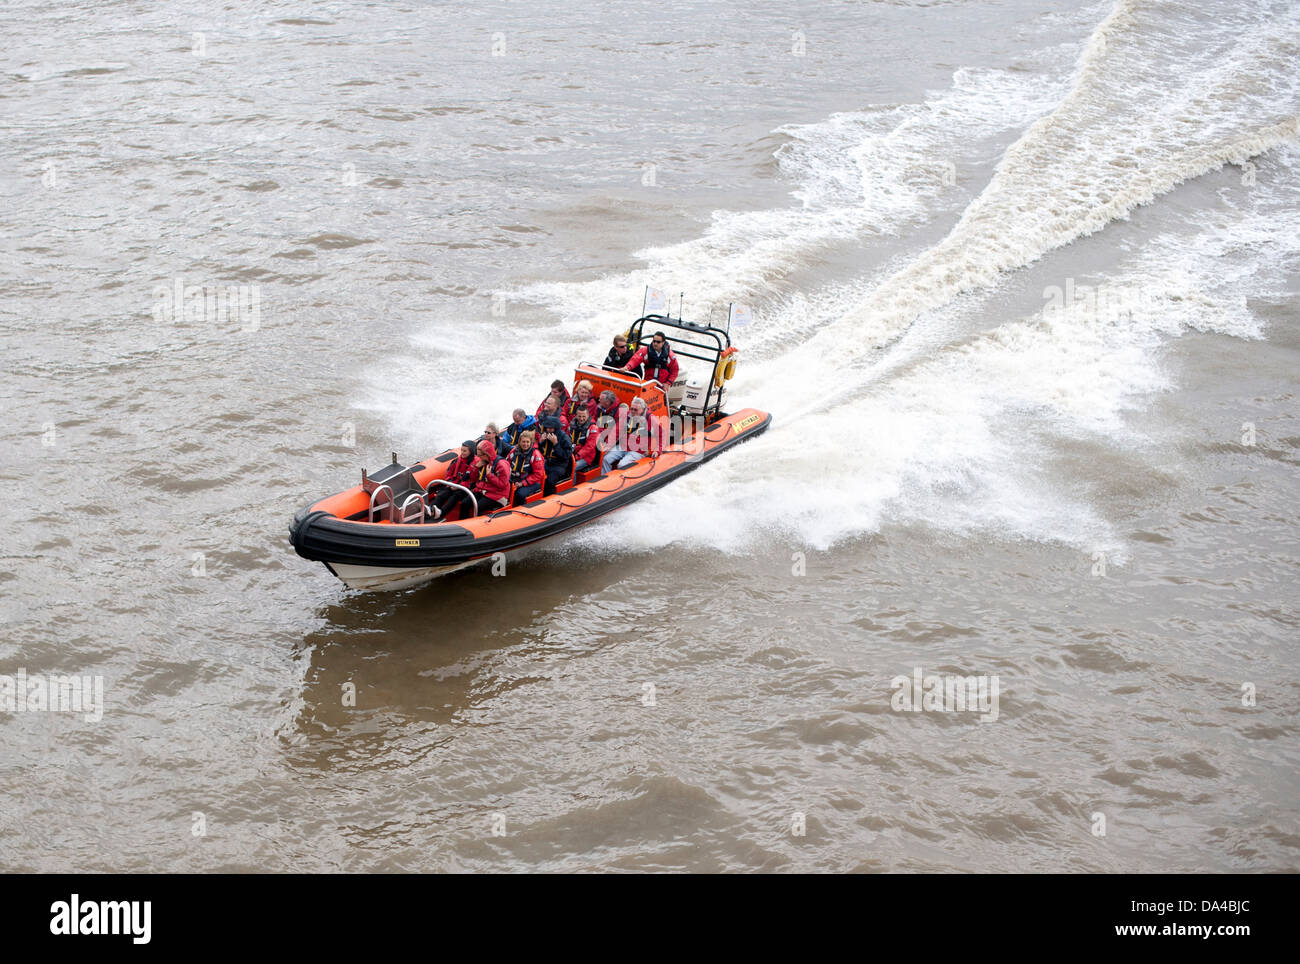 Rib voyages thames rubber speed boat tour - Stock Image